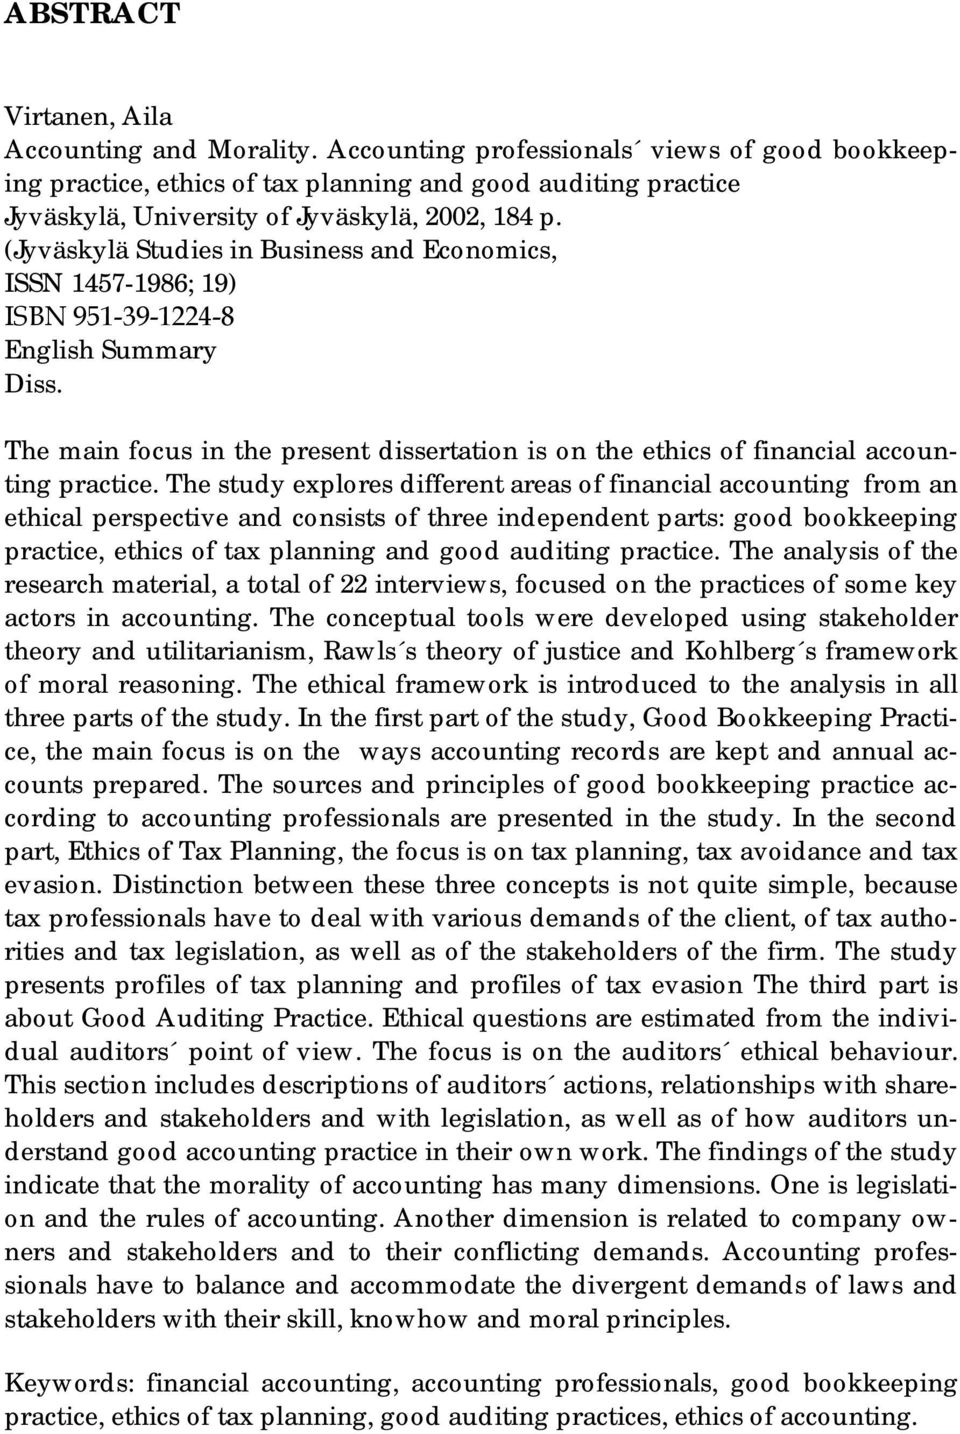 (Jyväskylä Studies in Business and Economics, ISSN 1457-1986; 19) ISBN 951-39-1224-8 English Summary Diss. The main focus in the present dissertation is on the ethics of financial accounting practice.